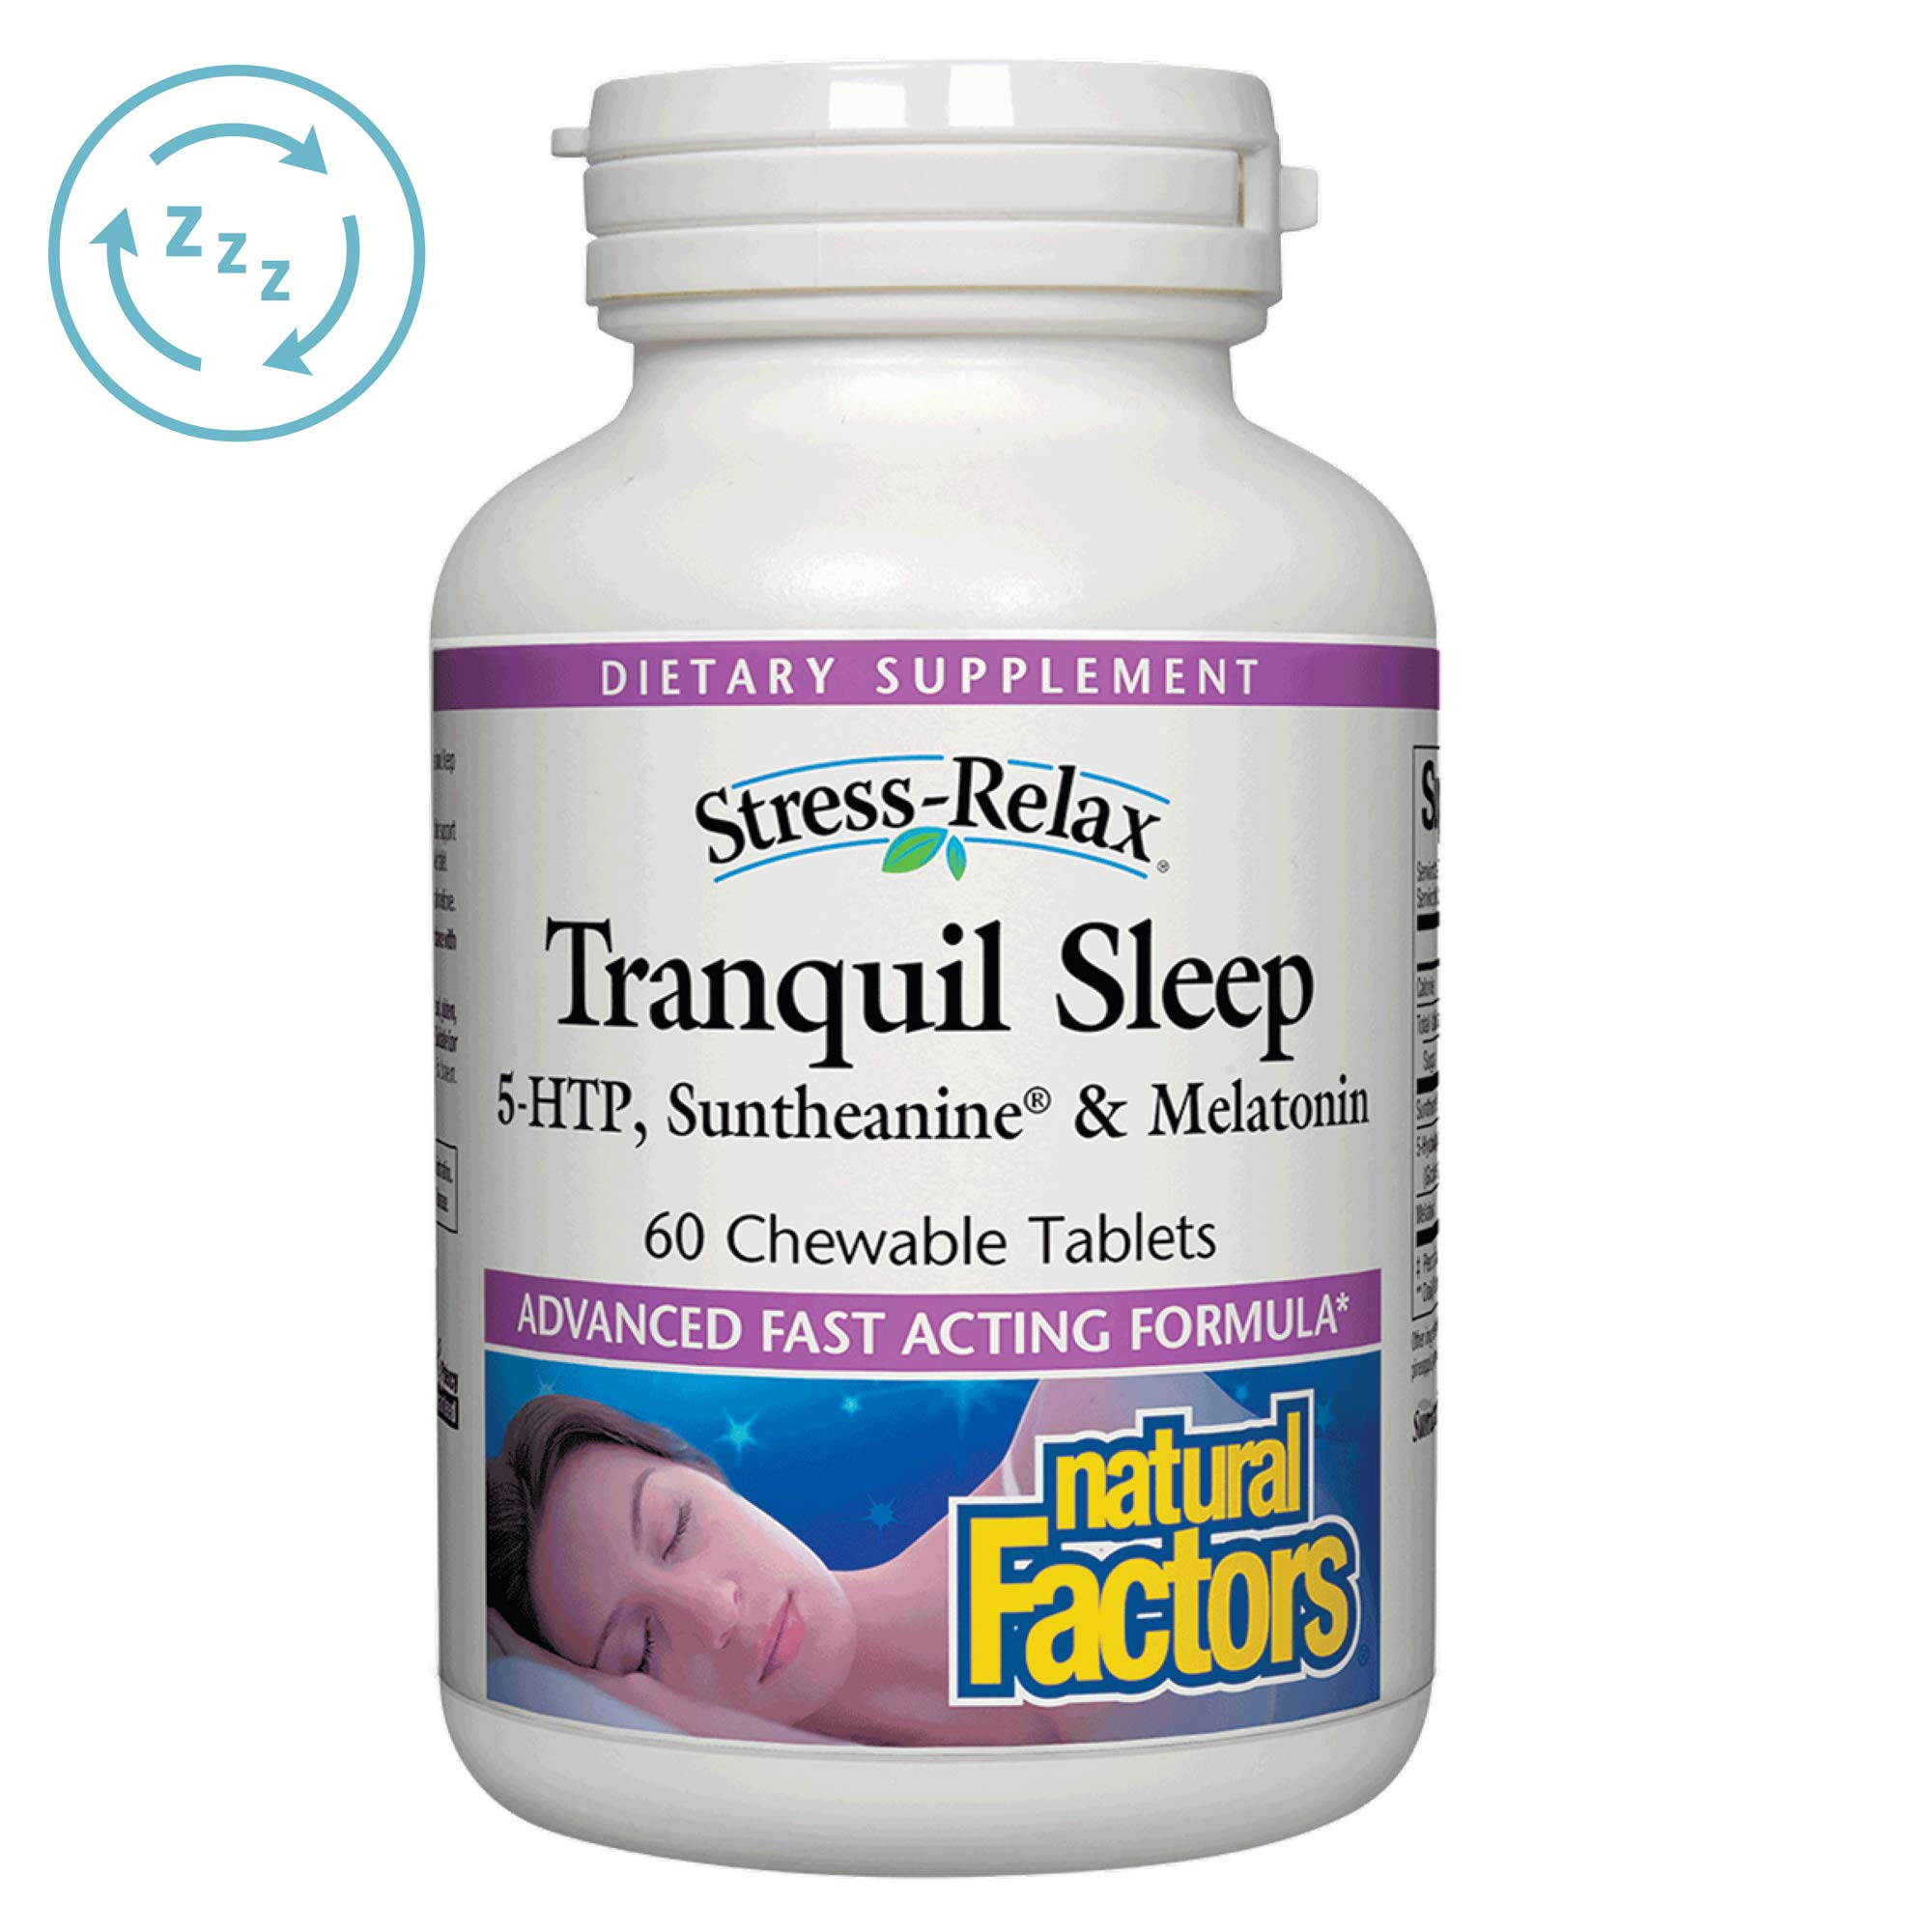 Stress-Relax Chewable Tranquil Sleep by Natural Factors, Sleep Aid with Suntheanine L-Theanine, 5-HTP, Melatonin, Tropical Fruit Flavor, 60 Tablets (30 Servings) by Natural Factors